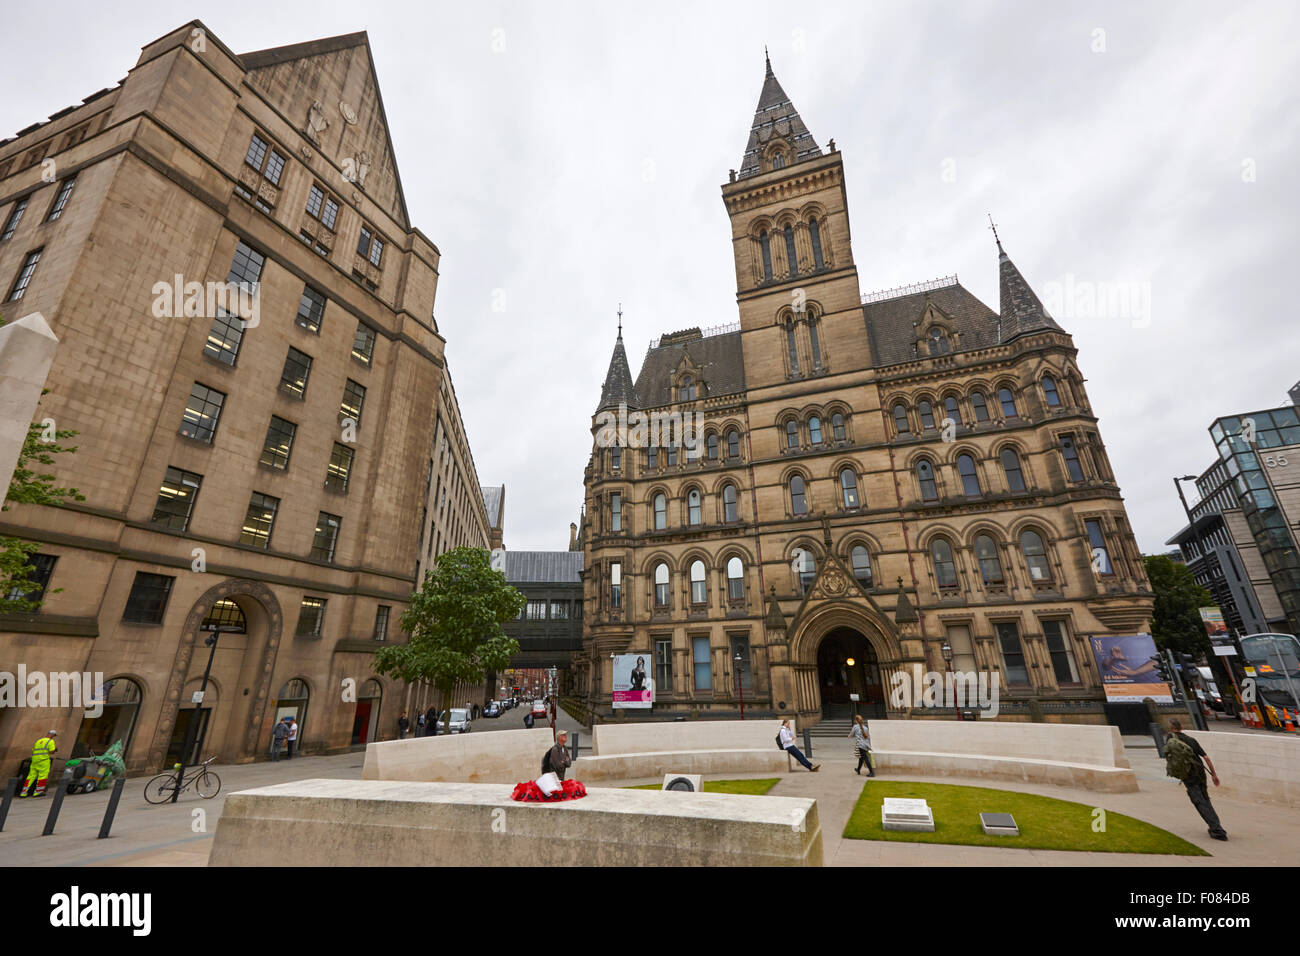 Manchester town hall England UK - Stock Image